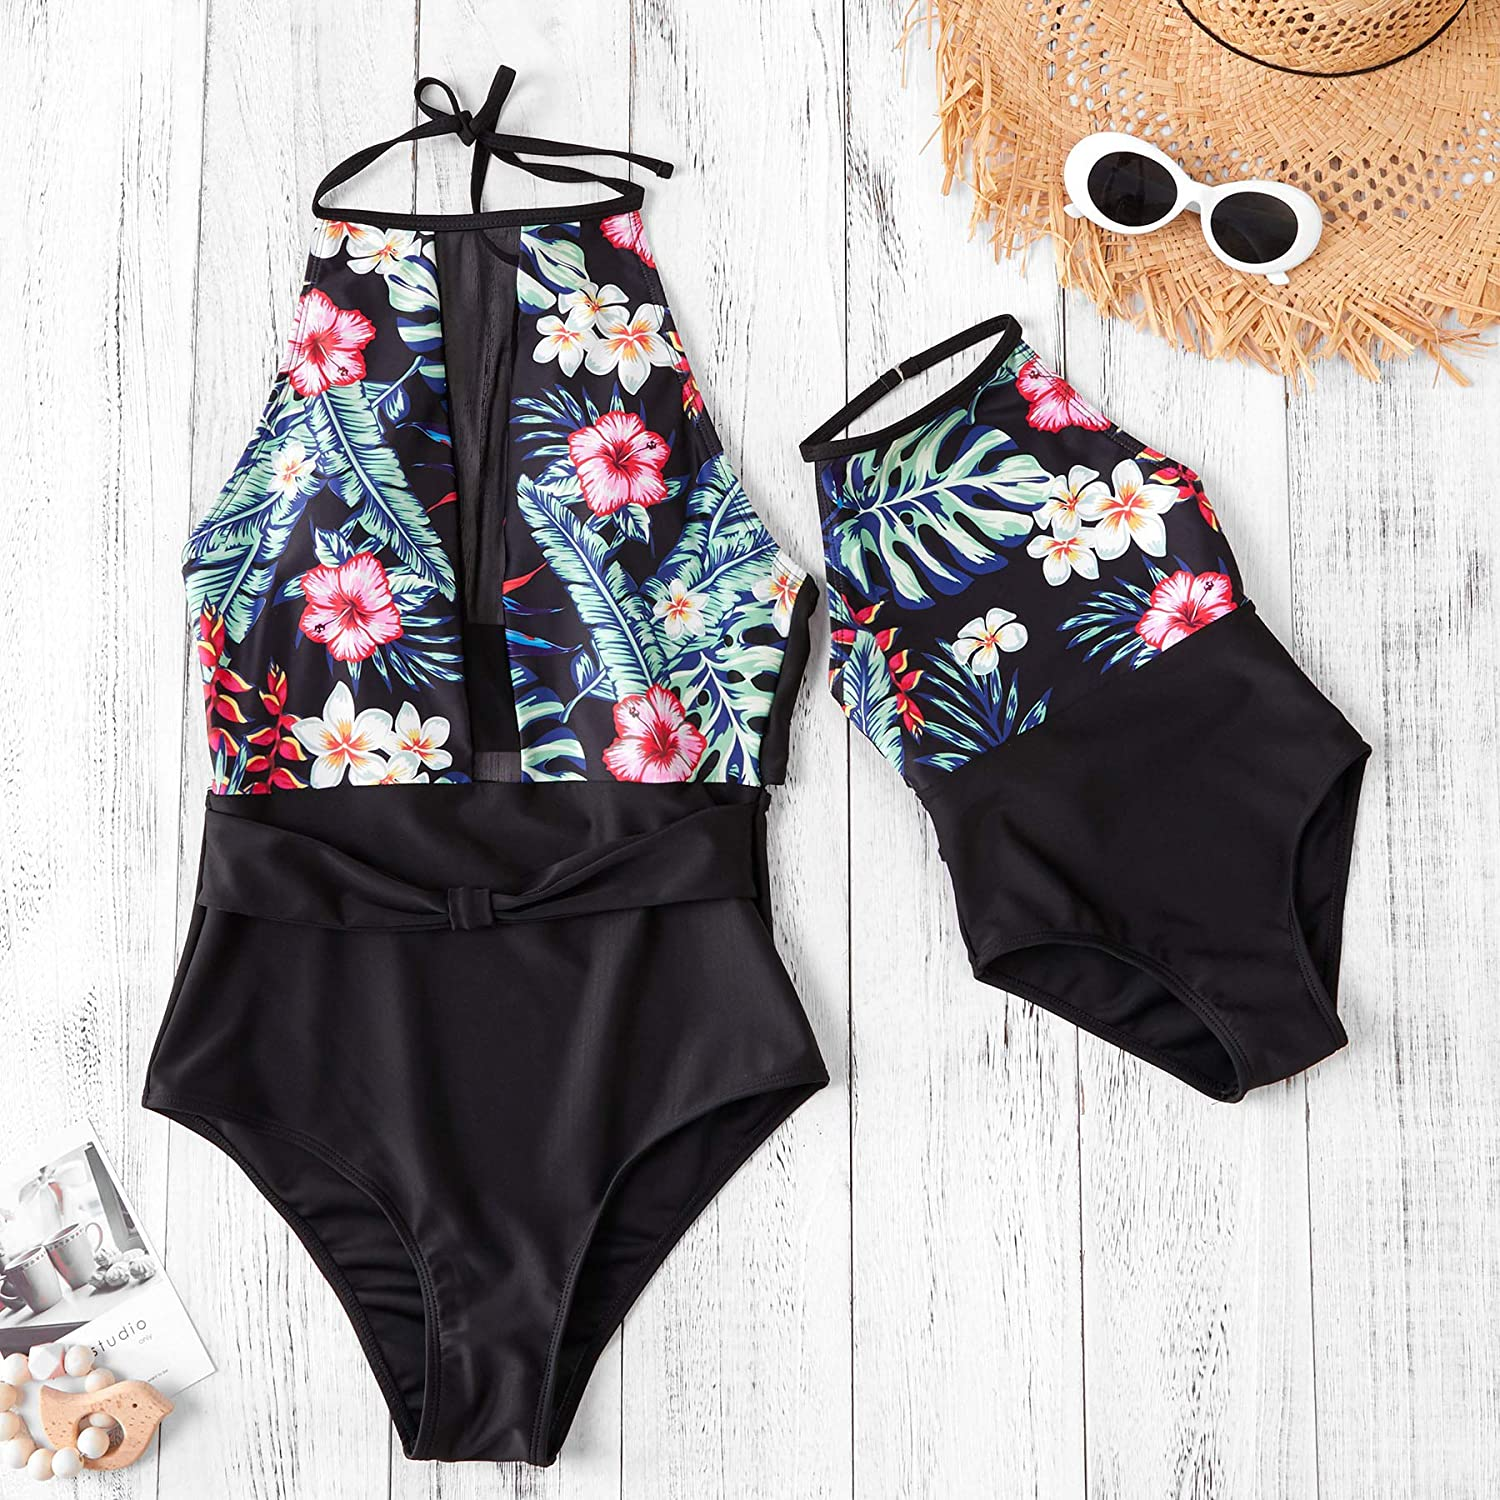 Yaffi Mommy and Me Matching Swimwear One Piece 2019 Newest Bathing Suit Off Shoulder Floral Printed Monokini